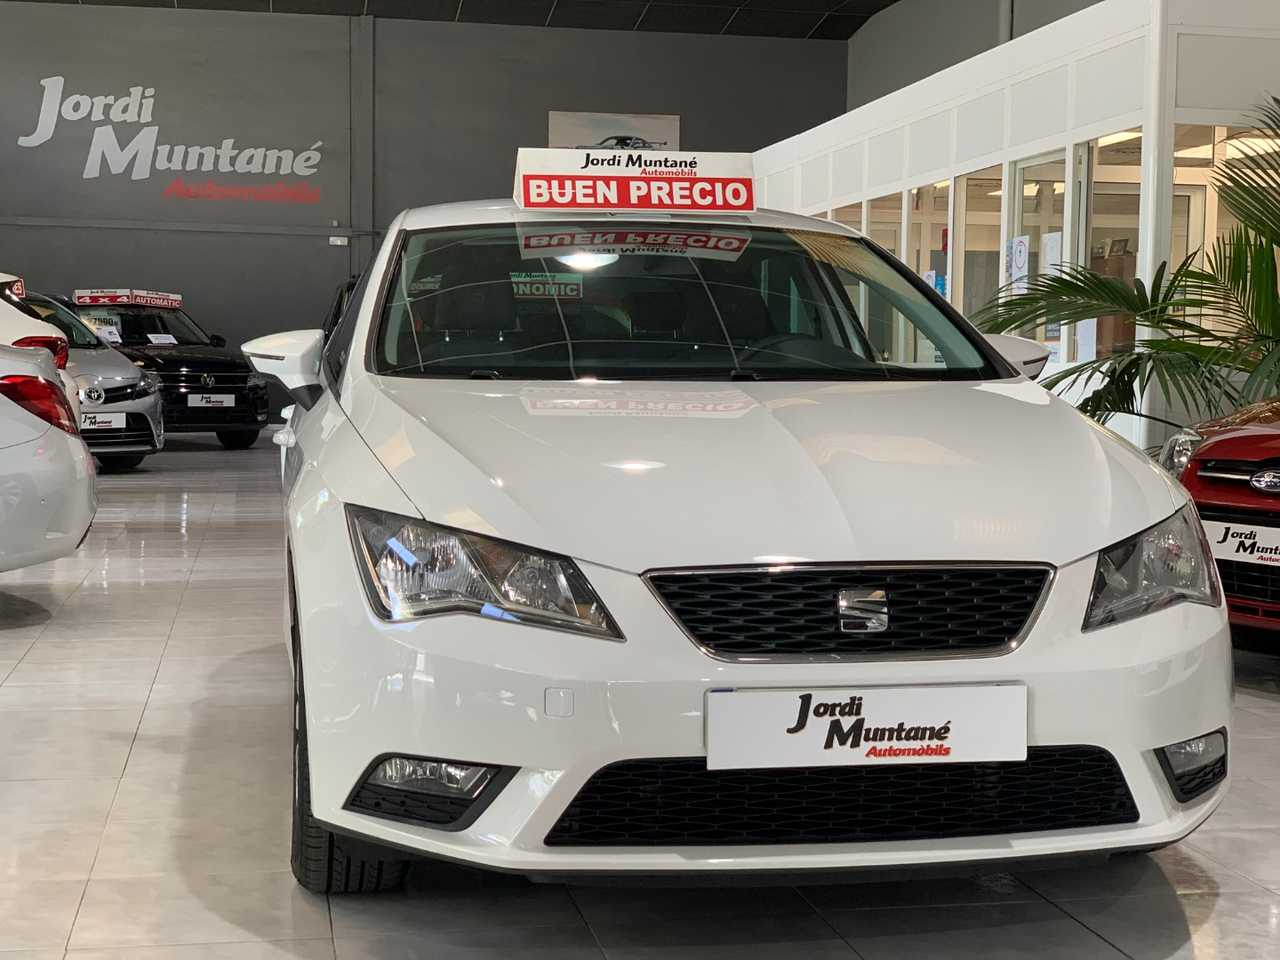 Seat Leon 1.6 TDI CR 110CV .- '' Reference '' -. 5 PUERTAS .-   - Foto 1